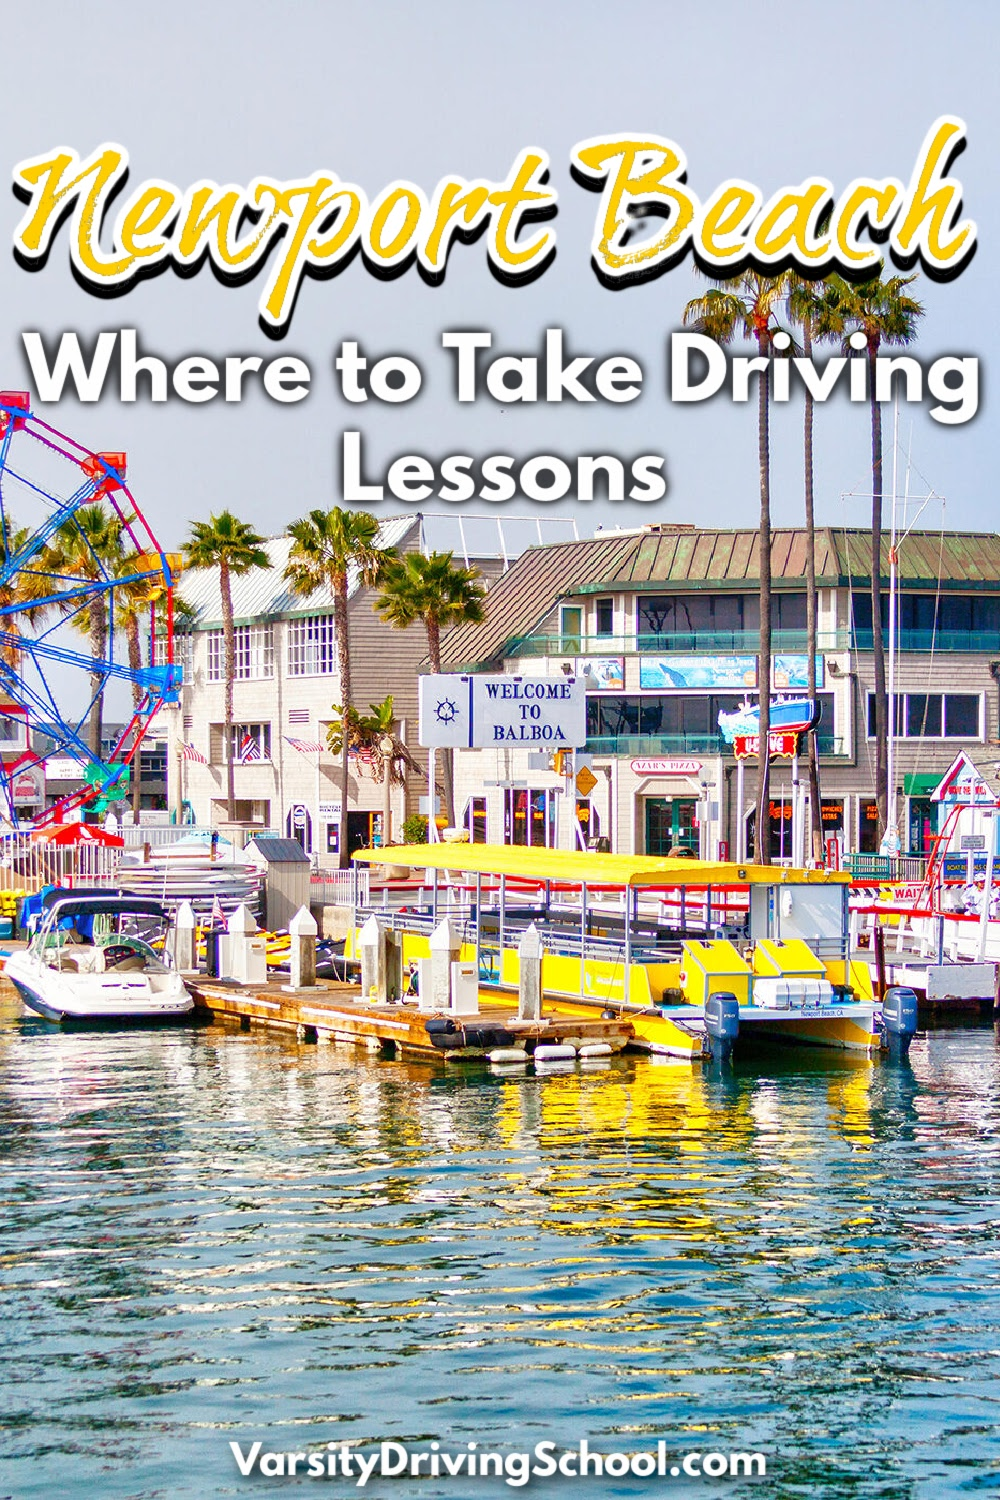 Varsity Driving Academy is where to take driving lessons in Newport Beach to ensure you get the best driving school in Orange County experience.